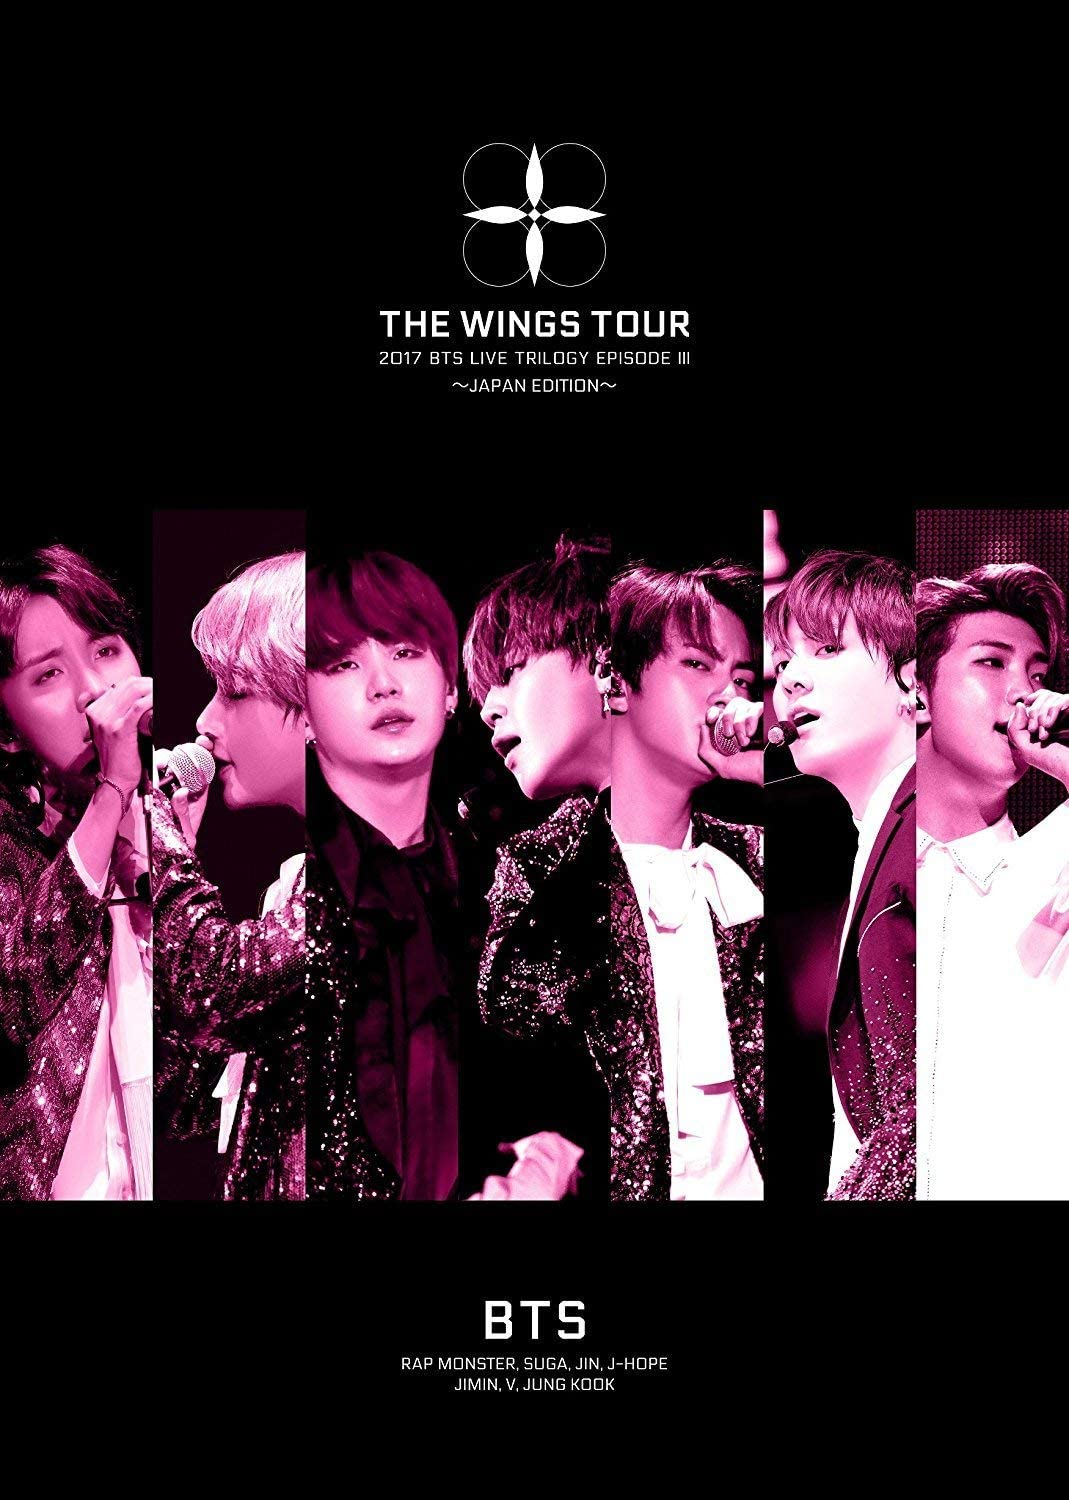 Amazon Co Jp 2017 Bts Live Trilogy Episode Iii The Wings Tour